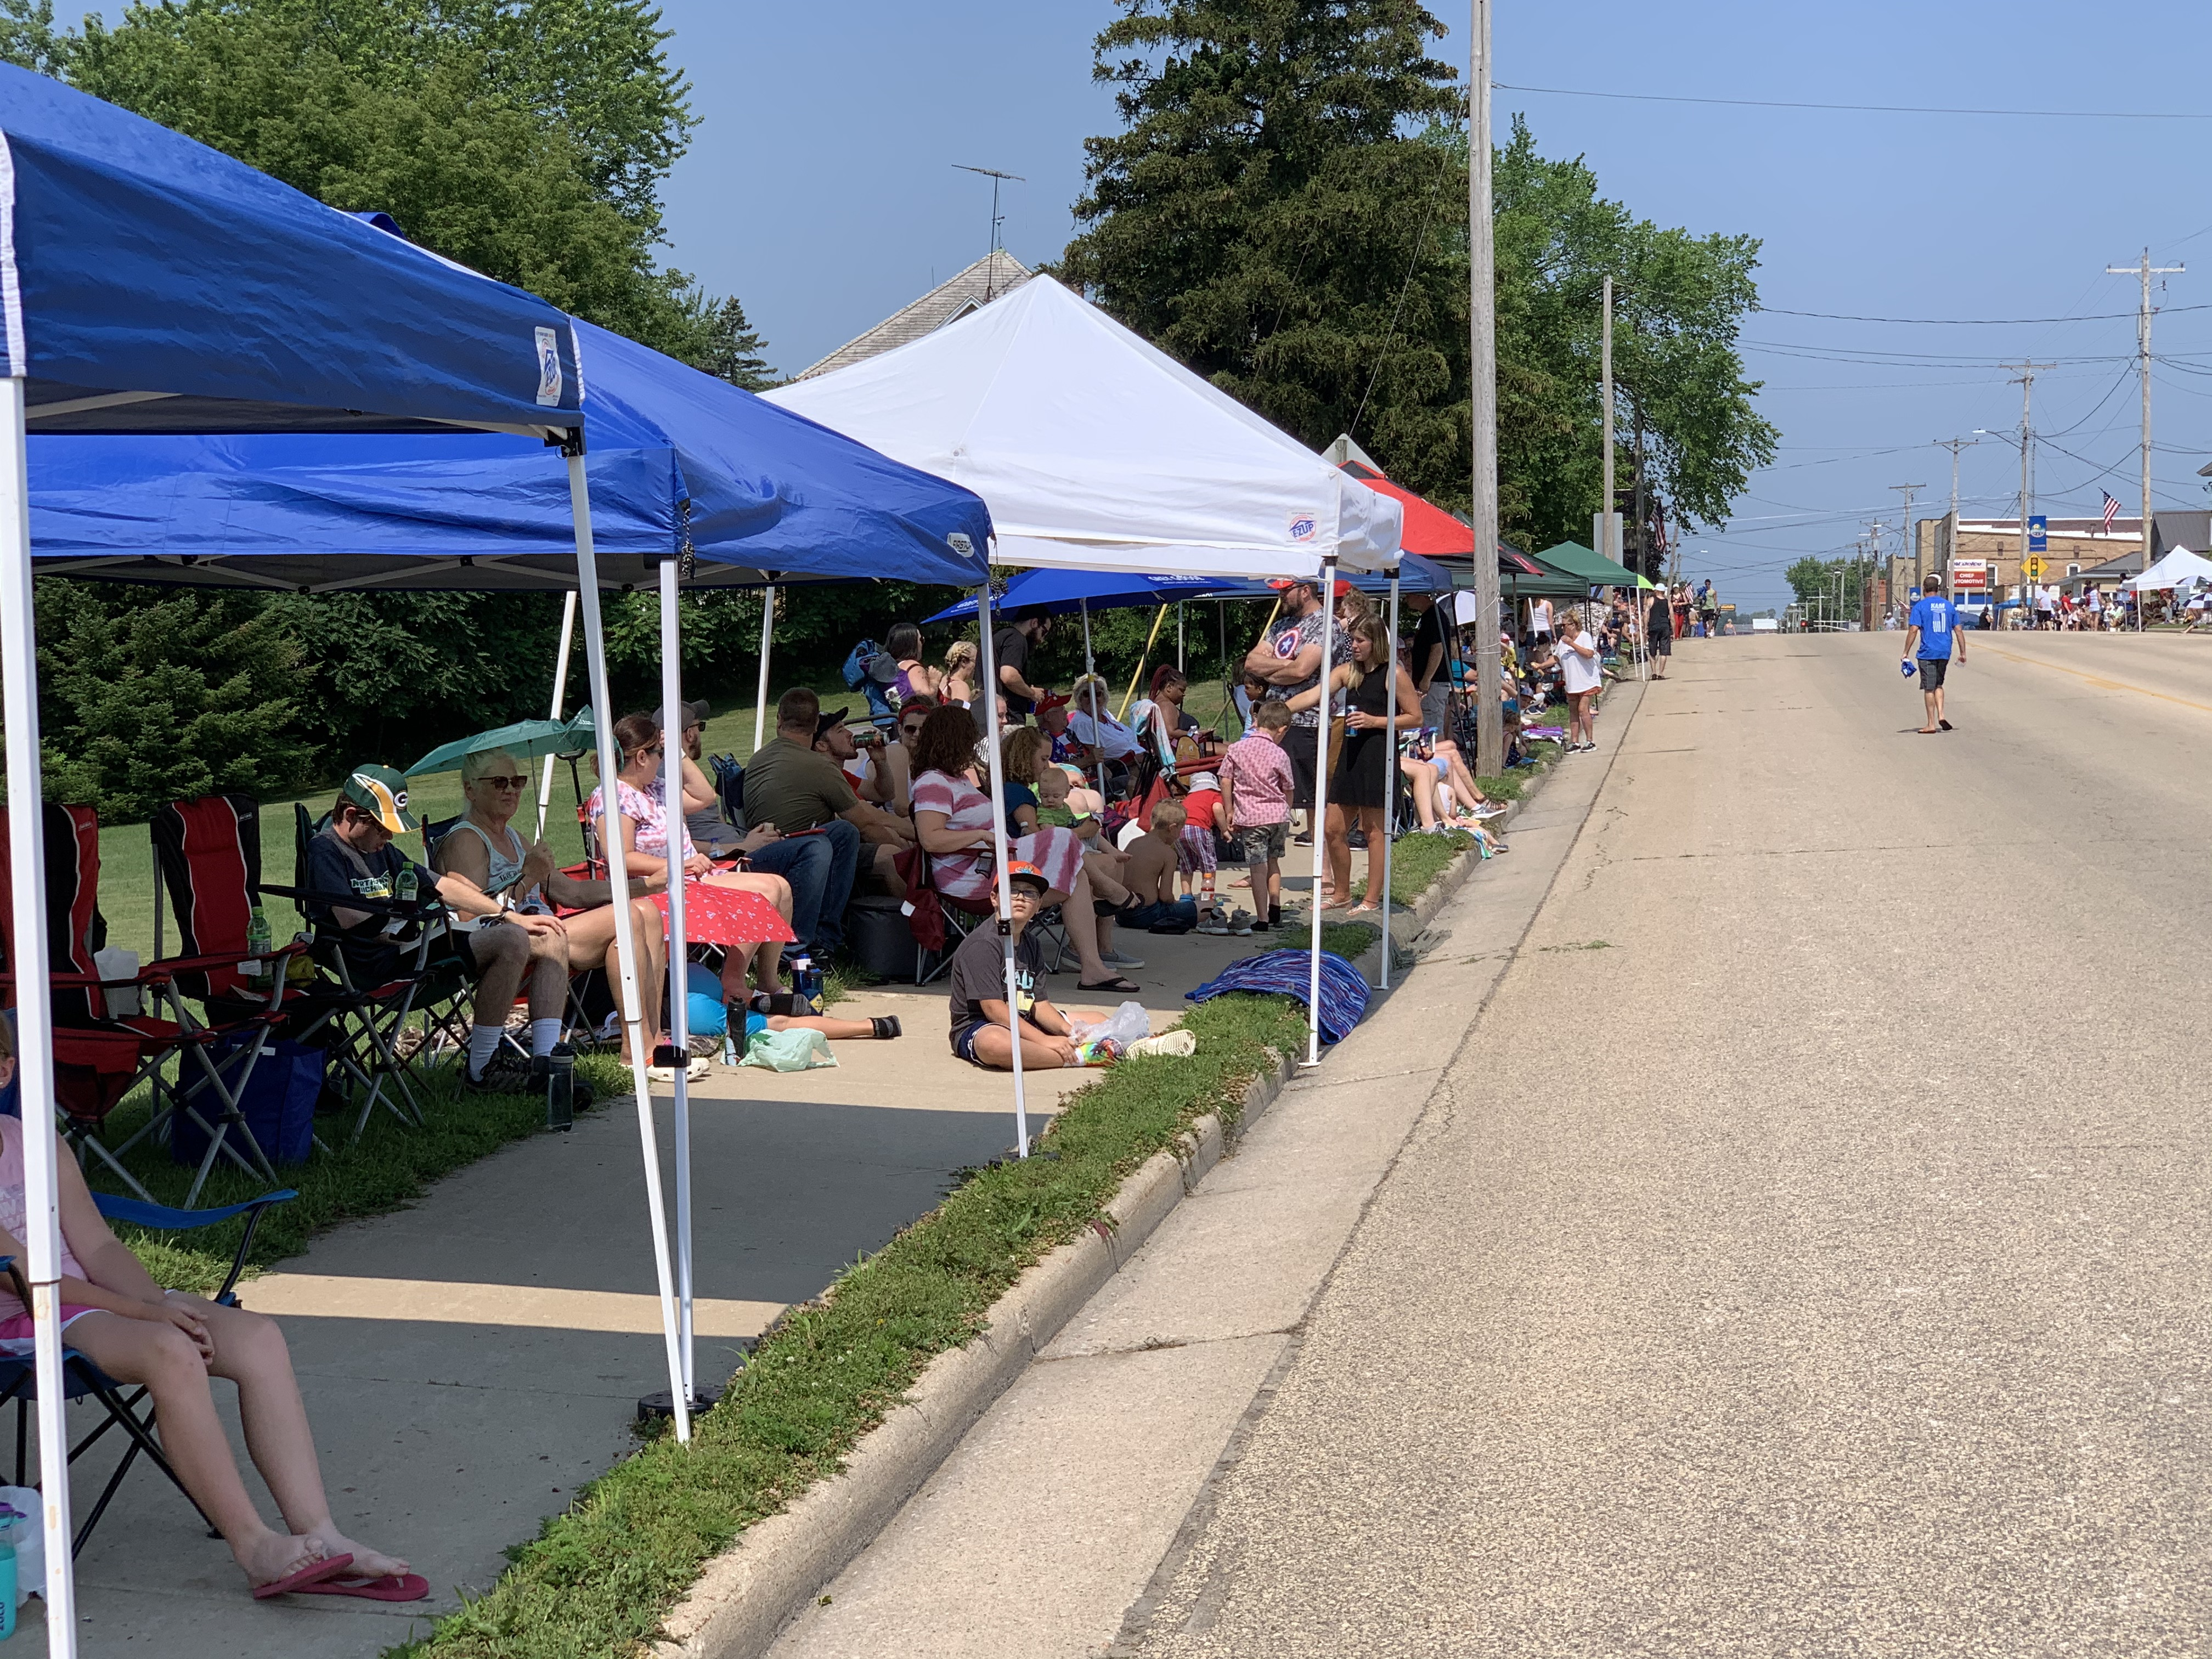 Green Bay Street was filled with tents as residents and visitors braved the heat to watch the Fourth of July parade pass in Bonduel on July 4.Luke Reimer   NEW Media